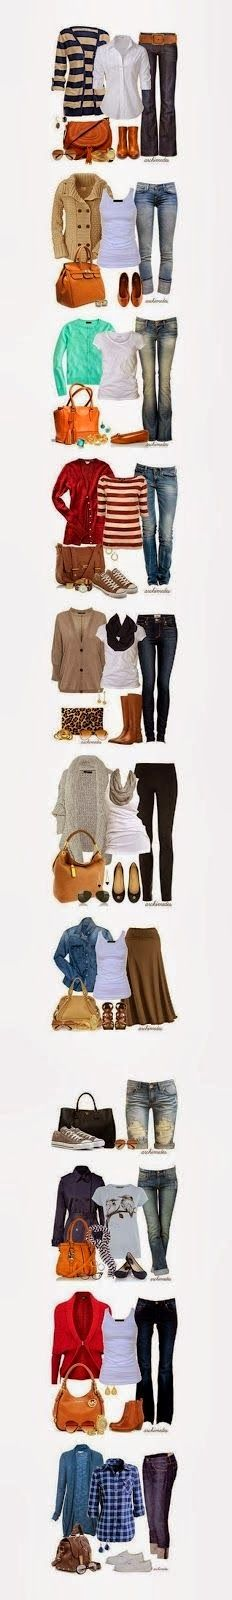 Some hottest winter fashion outfit inspiration for pretty ladies